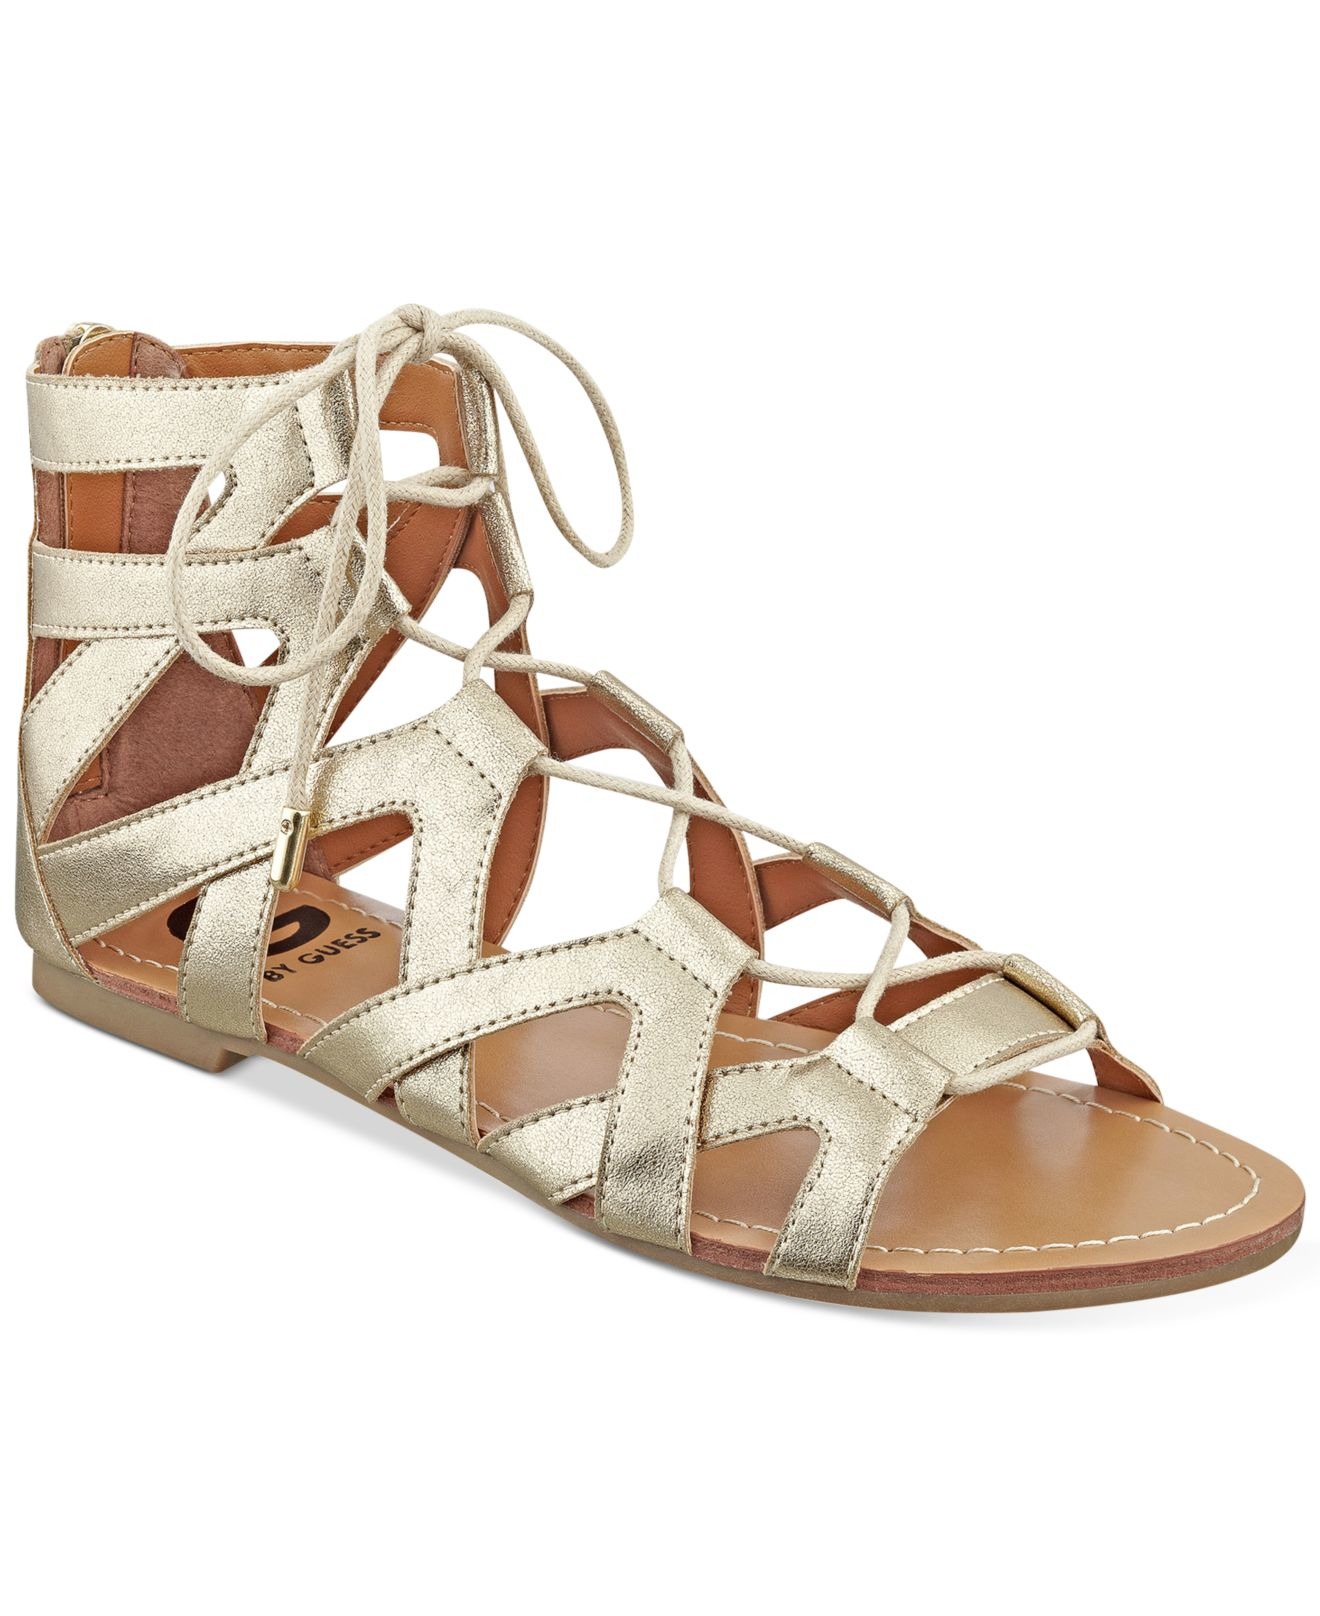 c2dba7e94fa2 Lyst - G by Guess Lookie Lace-up Gladiator Sandals in Natural